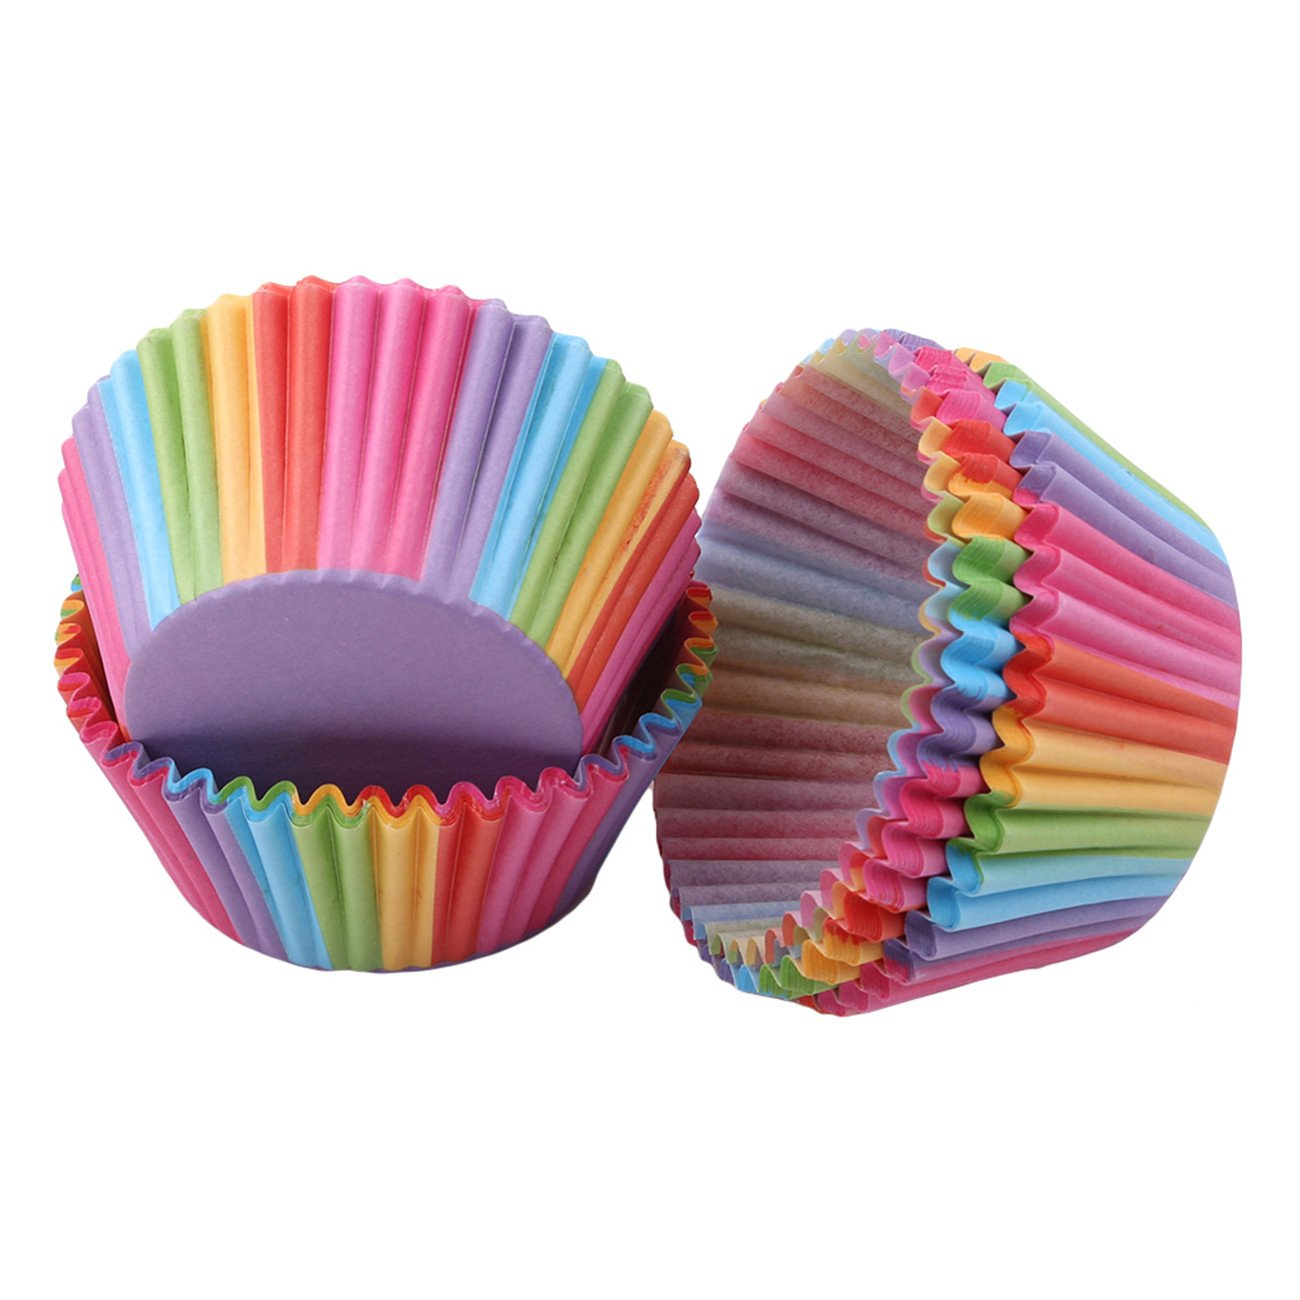 Bigsweety 100Pcs Colorful Paper Baking Cups Round Petite Loaf Pans Cupcake and Muffin Molds TangRen